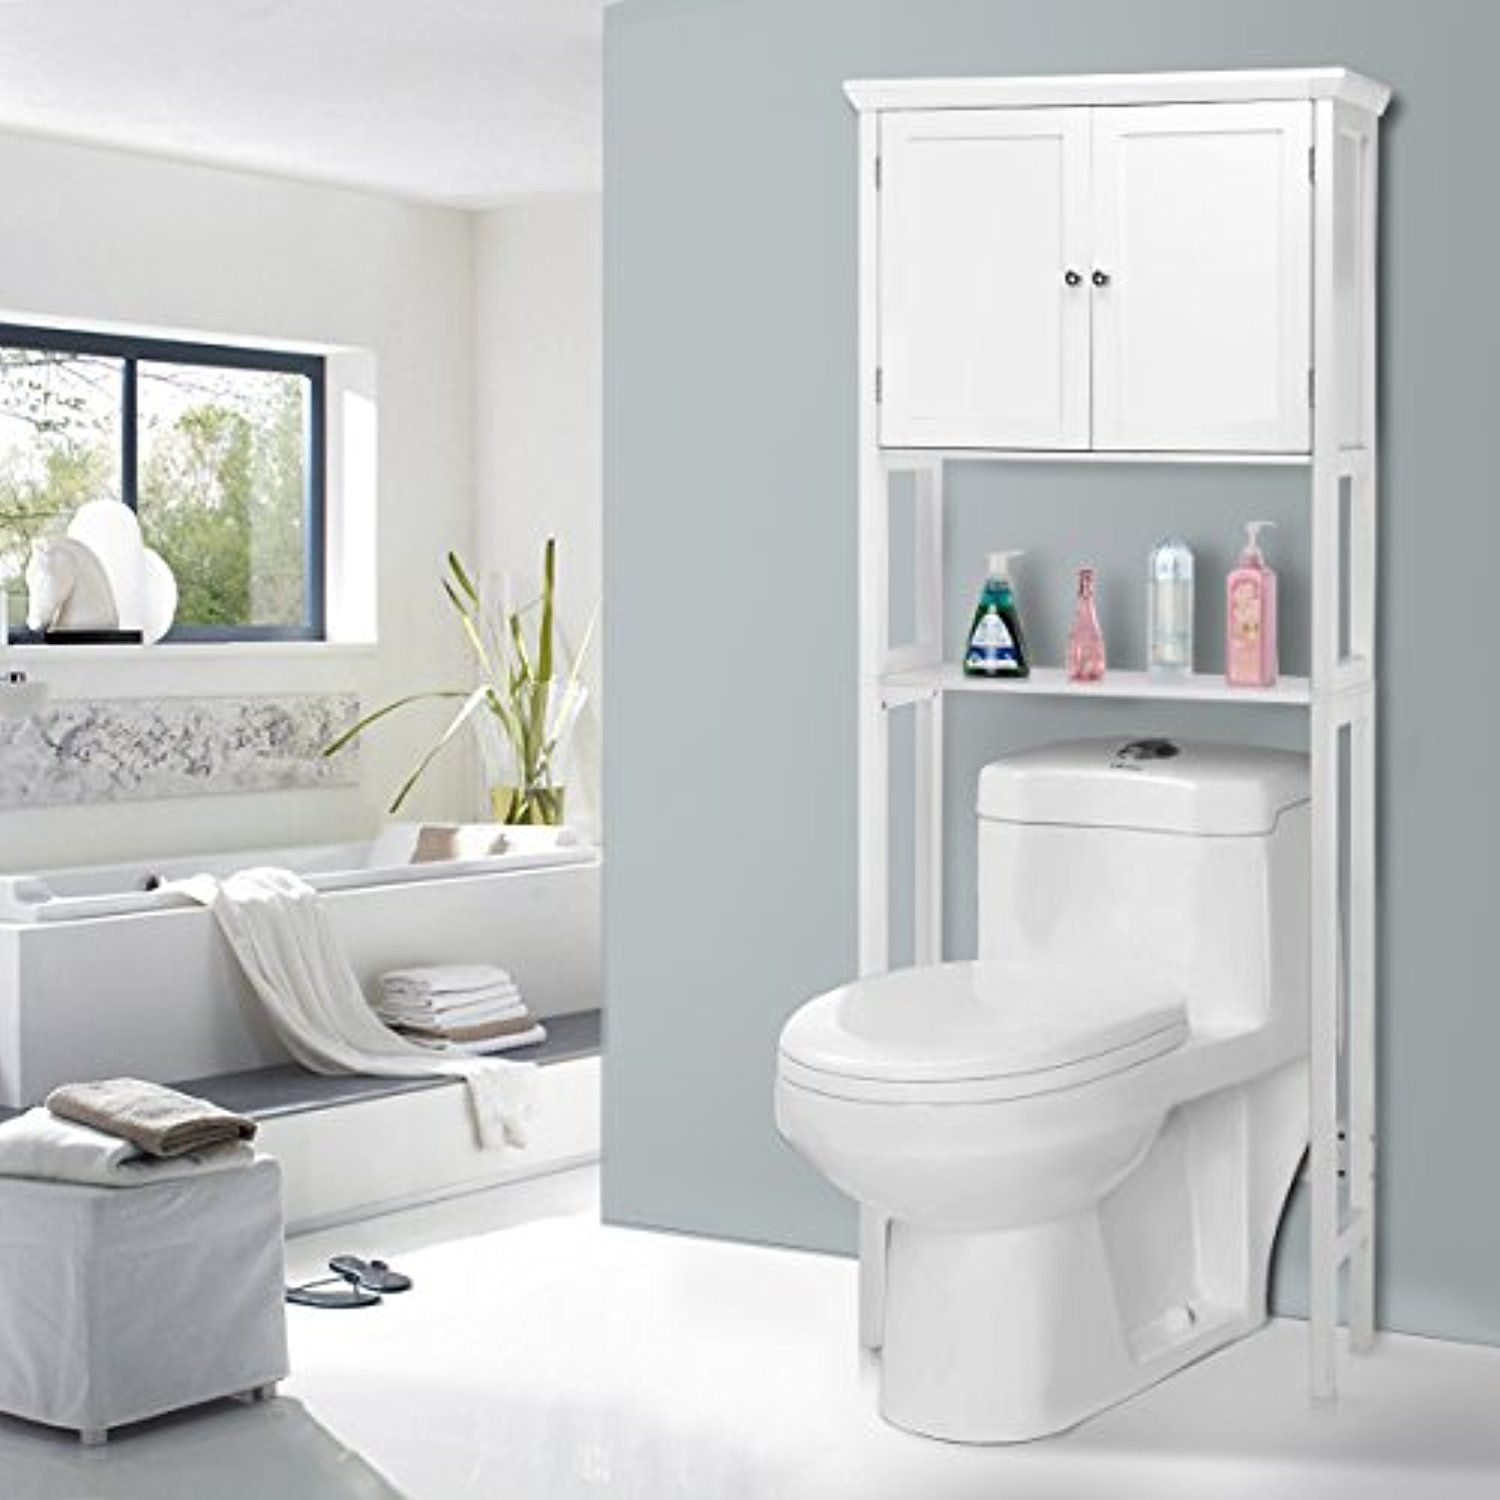 Giantex Over-the-Toilet Bathroom Storage Space Saver with Towel Rack ...